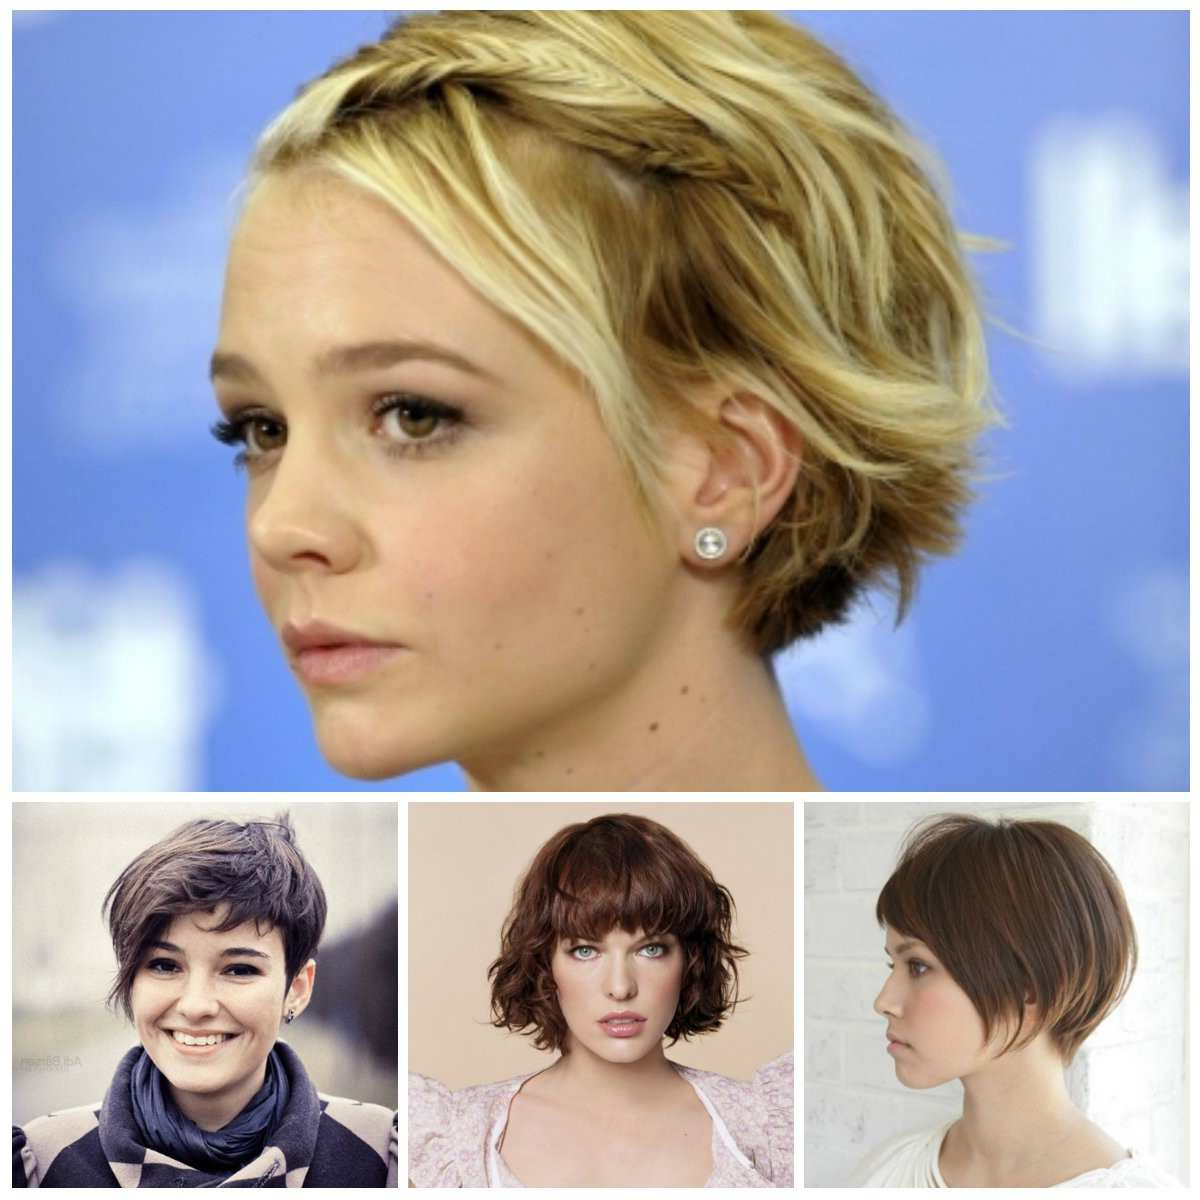 54 Haircuts For Girls   Hairstyle Ideas For Everyone Pertaining To Teenage Girl Short Haircuts (View 21 of 25)